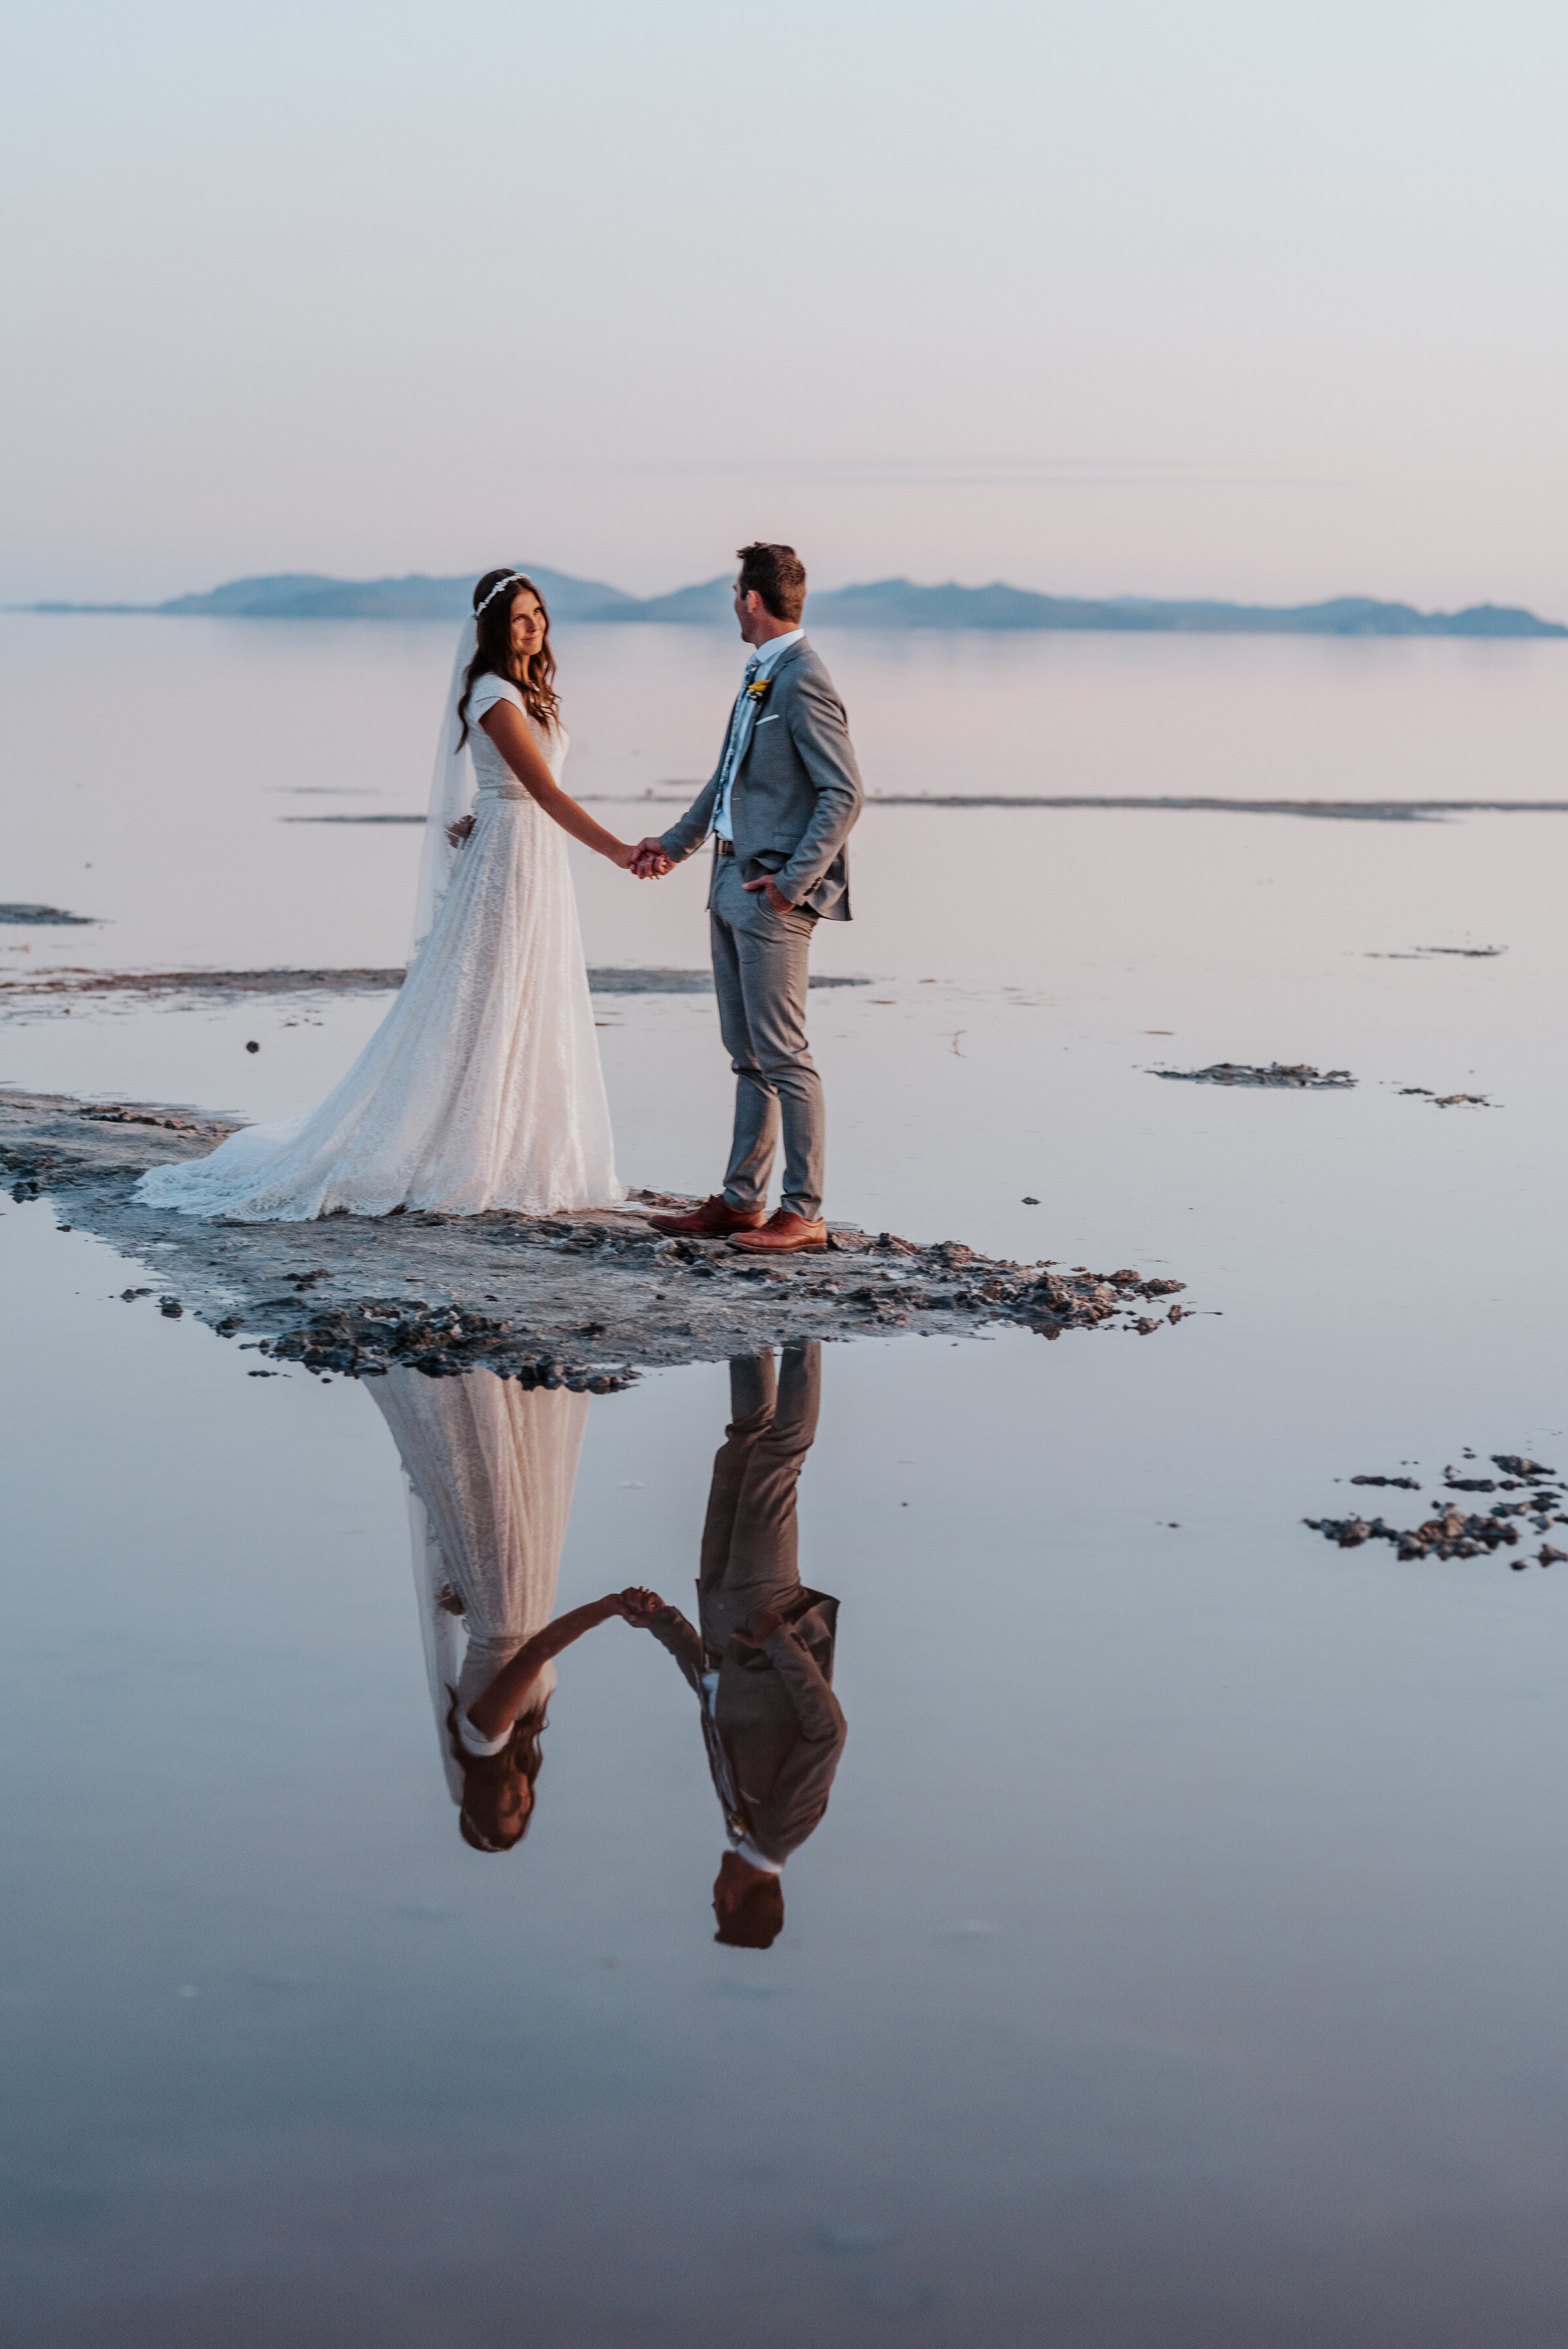 Flawless reflection of the bride and groom holding hands in the water of the Great Salt Lake Spiral Jetty. reflection water formal session sunset wedding photography #spiraljetty #GreatSaltLake #formalsession #SaltFlats #sunsetphotosession #NorthernUtah #weddingphotographer #formalphotographer #brideandgroom #outdoorformals #weddingformalphotography